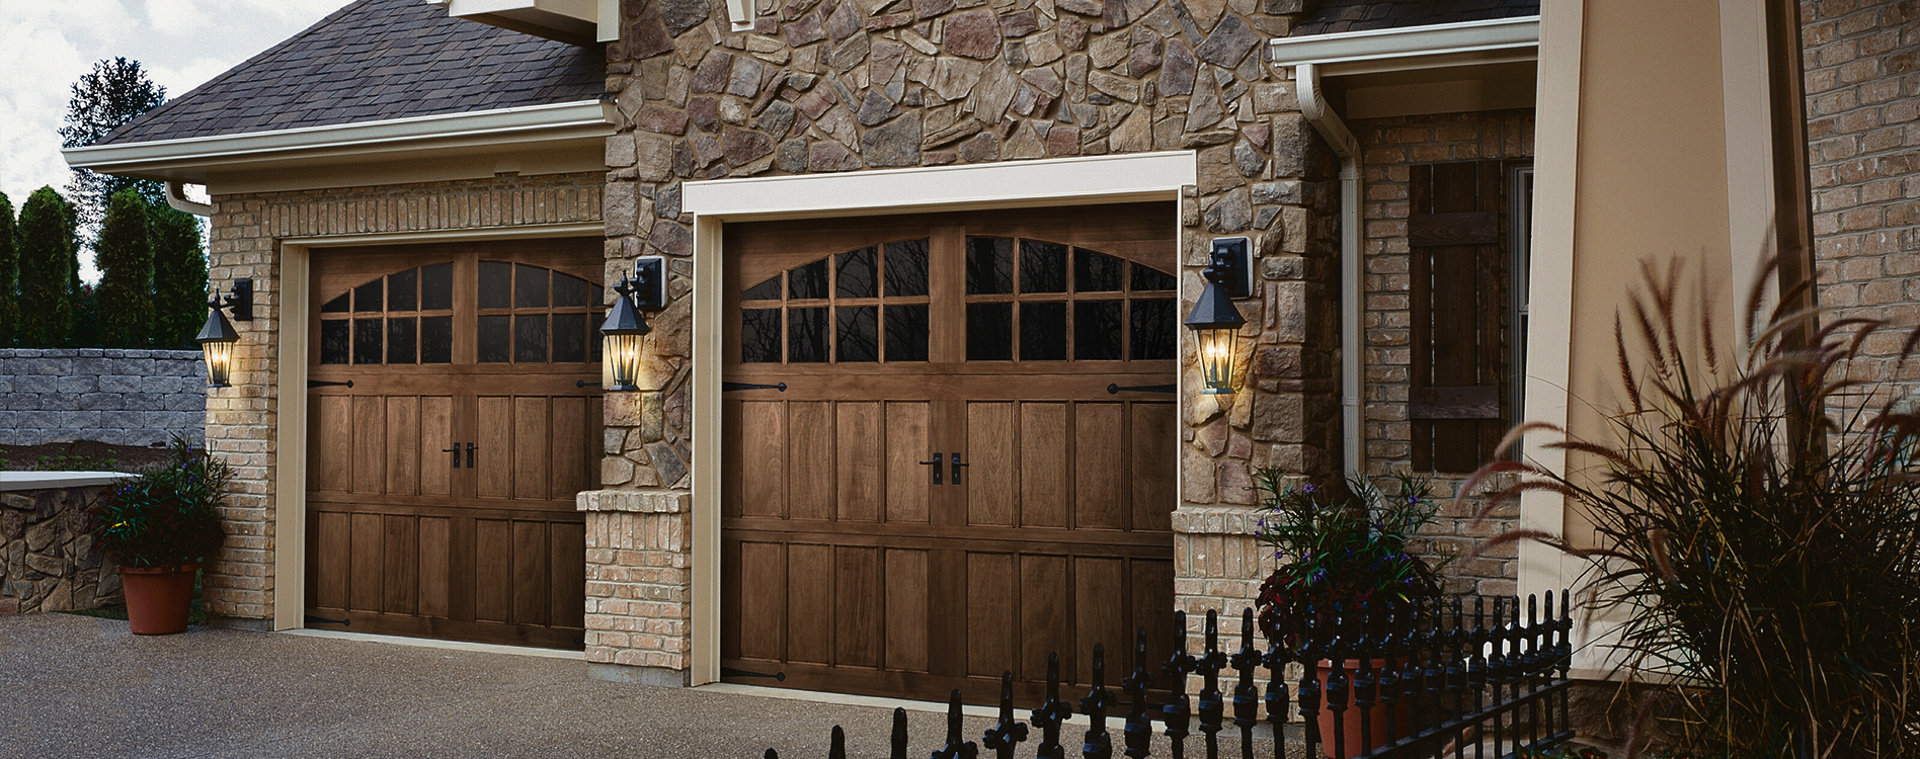 Garage door repairs by s amp t garage doors of northern virginia - Garage Door Contractor